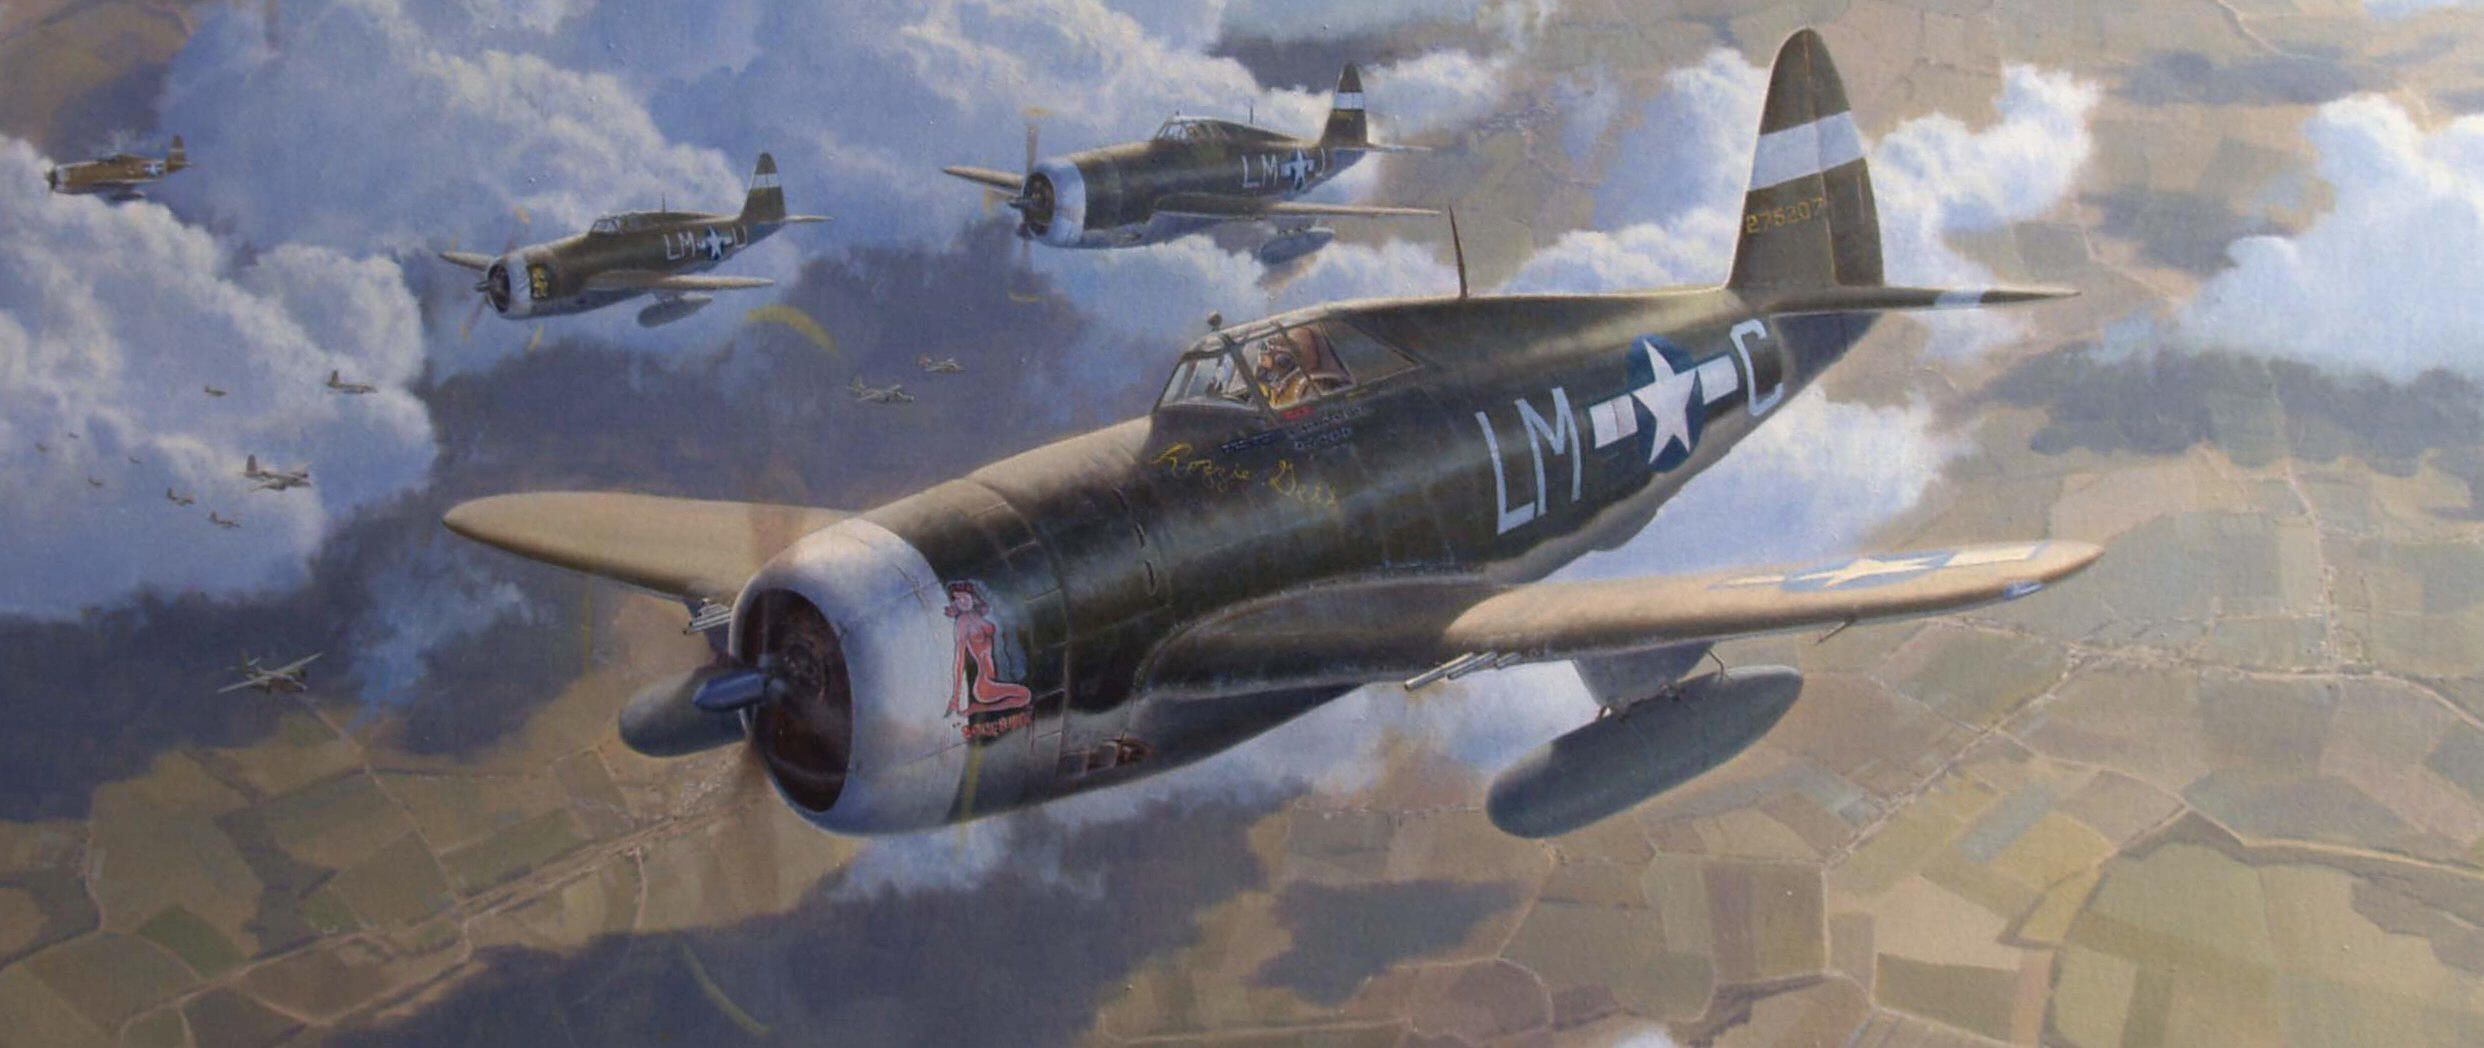 P-47 Thunderbolt aviation art